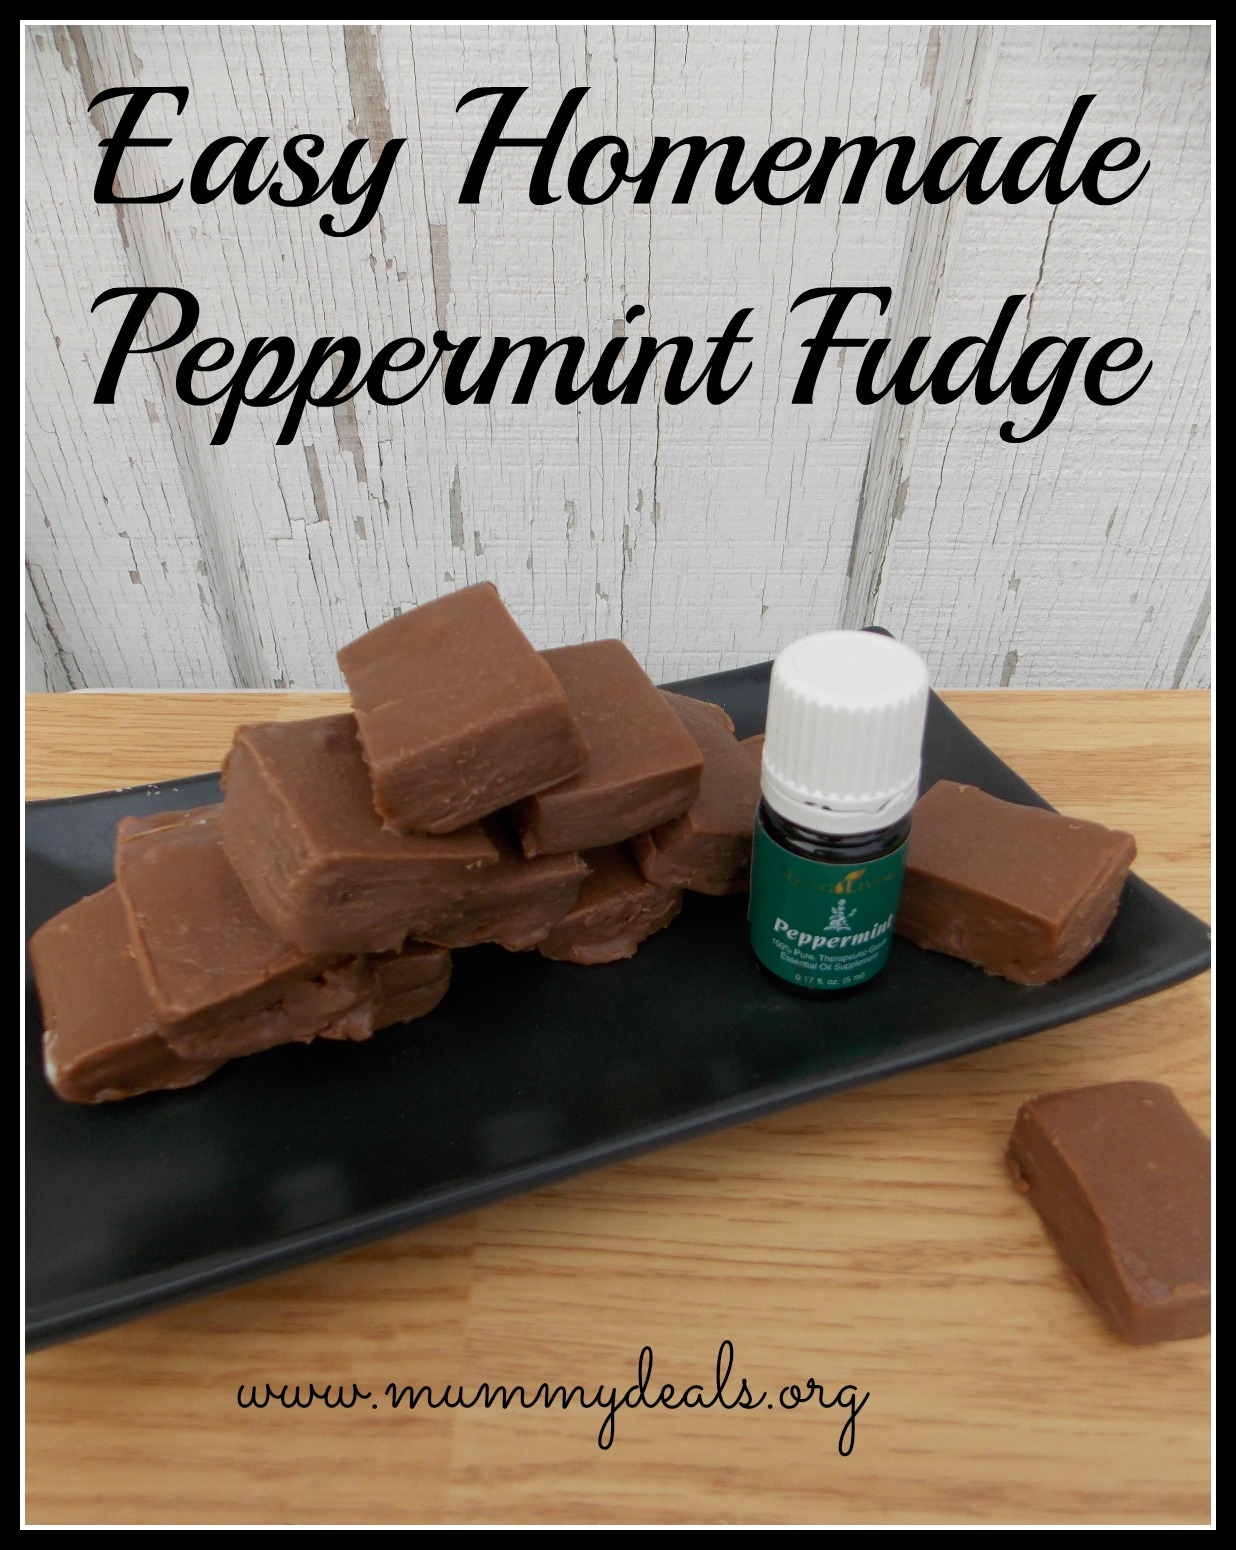 Easy Homemade Peppermint Fudge Recipe